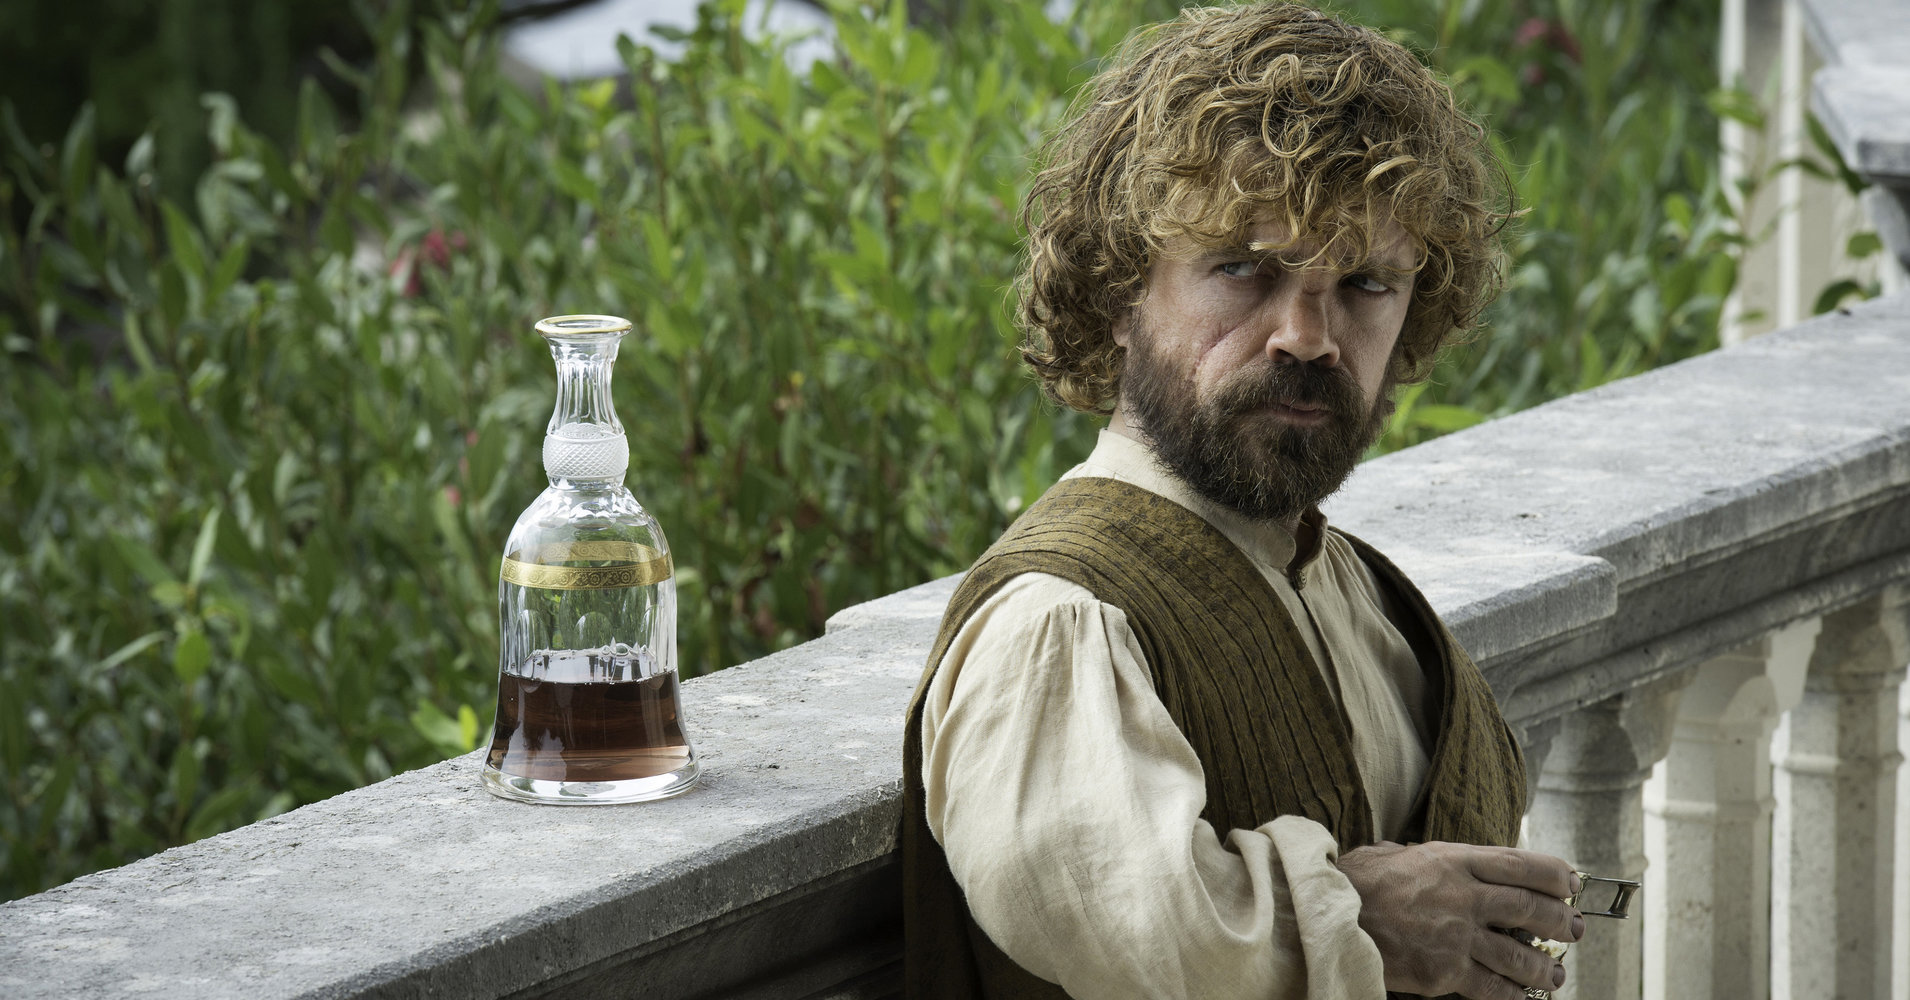 We Asked Some Comedians To Finish That Joke Tyrion Keeps Starting On 'Game Of Thrones'